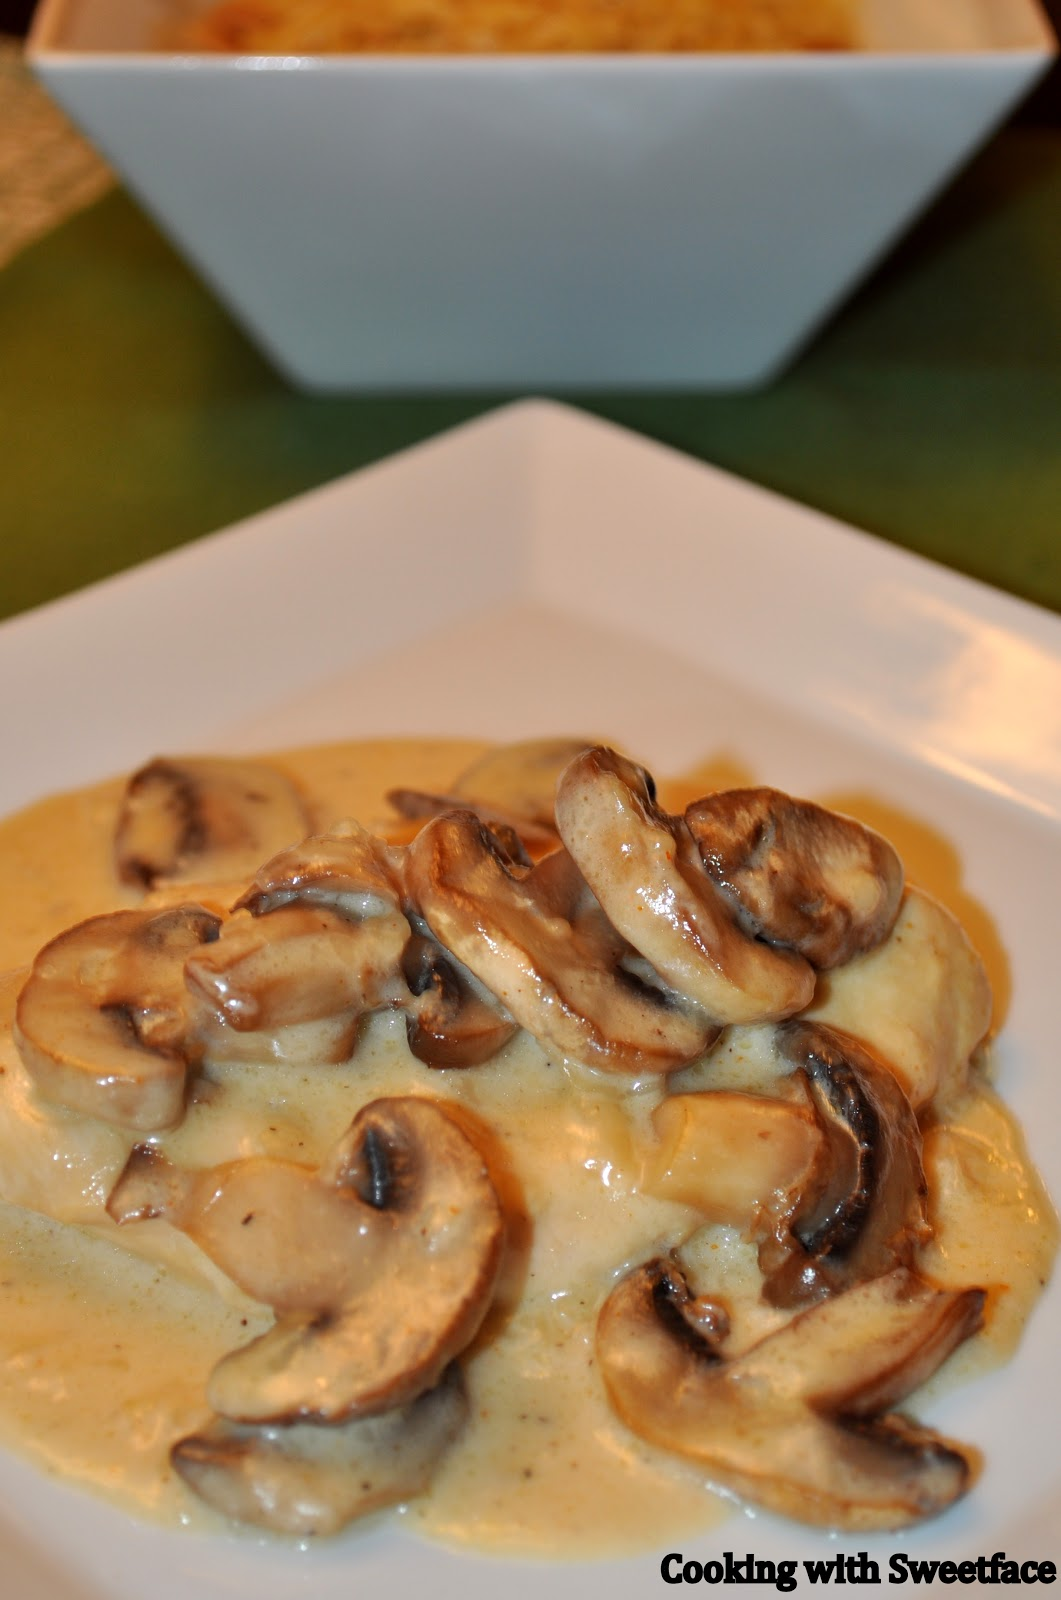 CookingwithSweetface: Chicken with Mushroom Cream Sauce